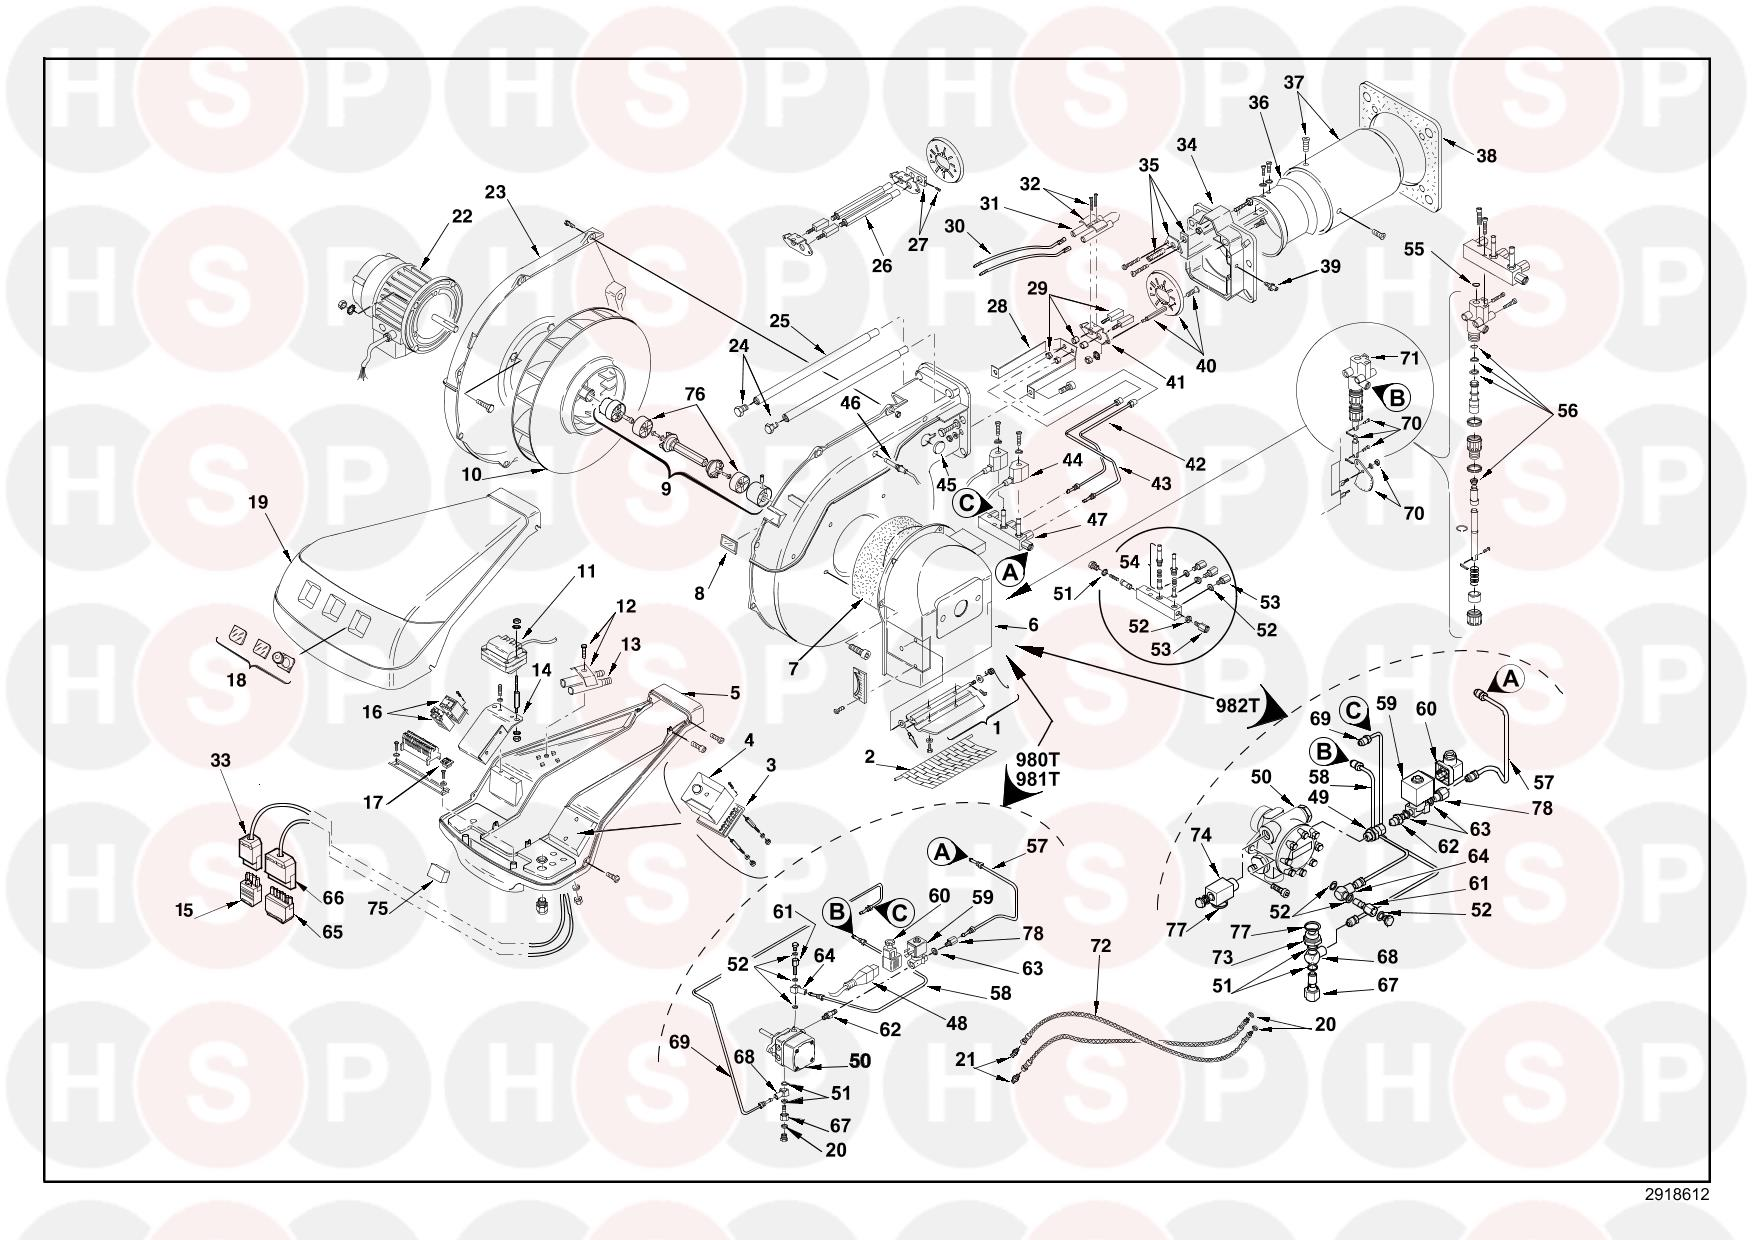 Riello RL 100 3471812 (TYPE 981T) (BURNER EXPLODED VIEW